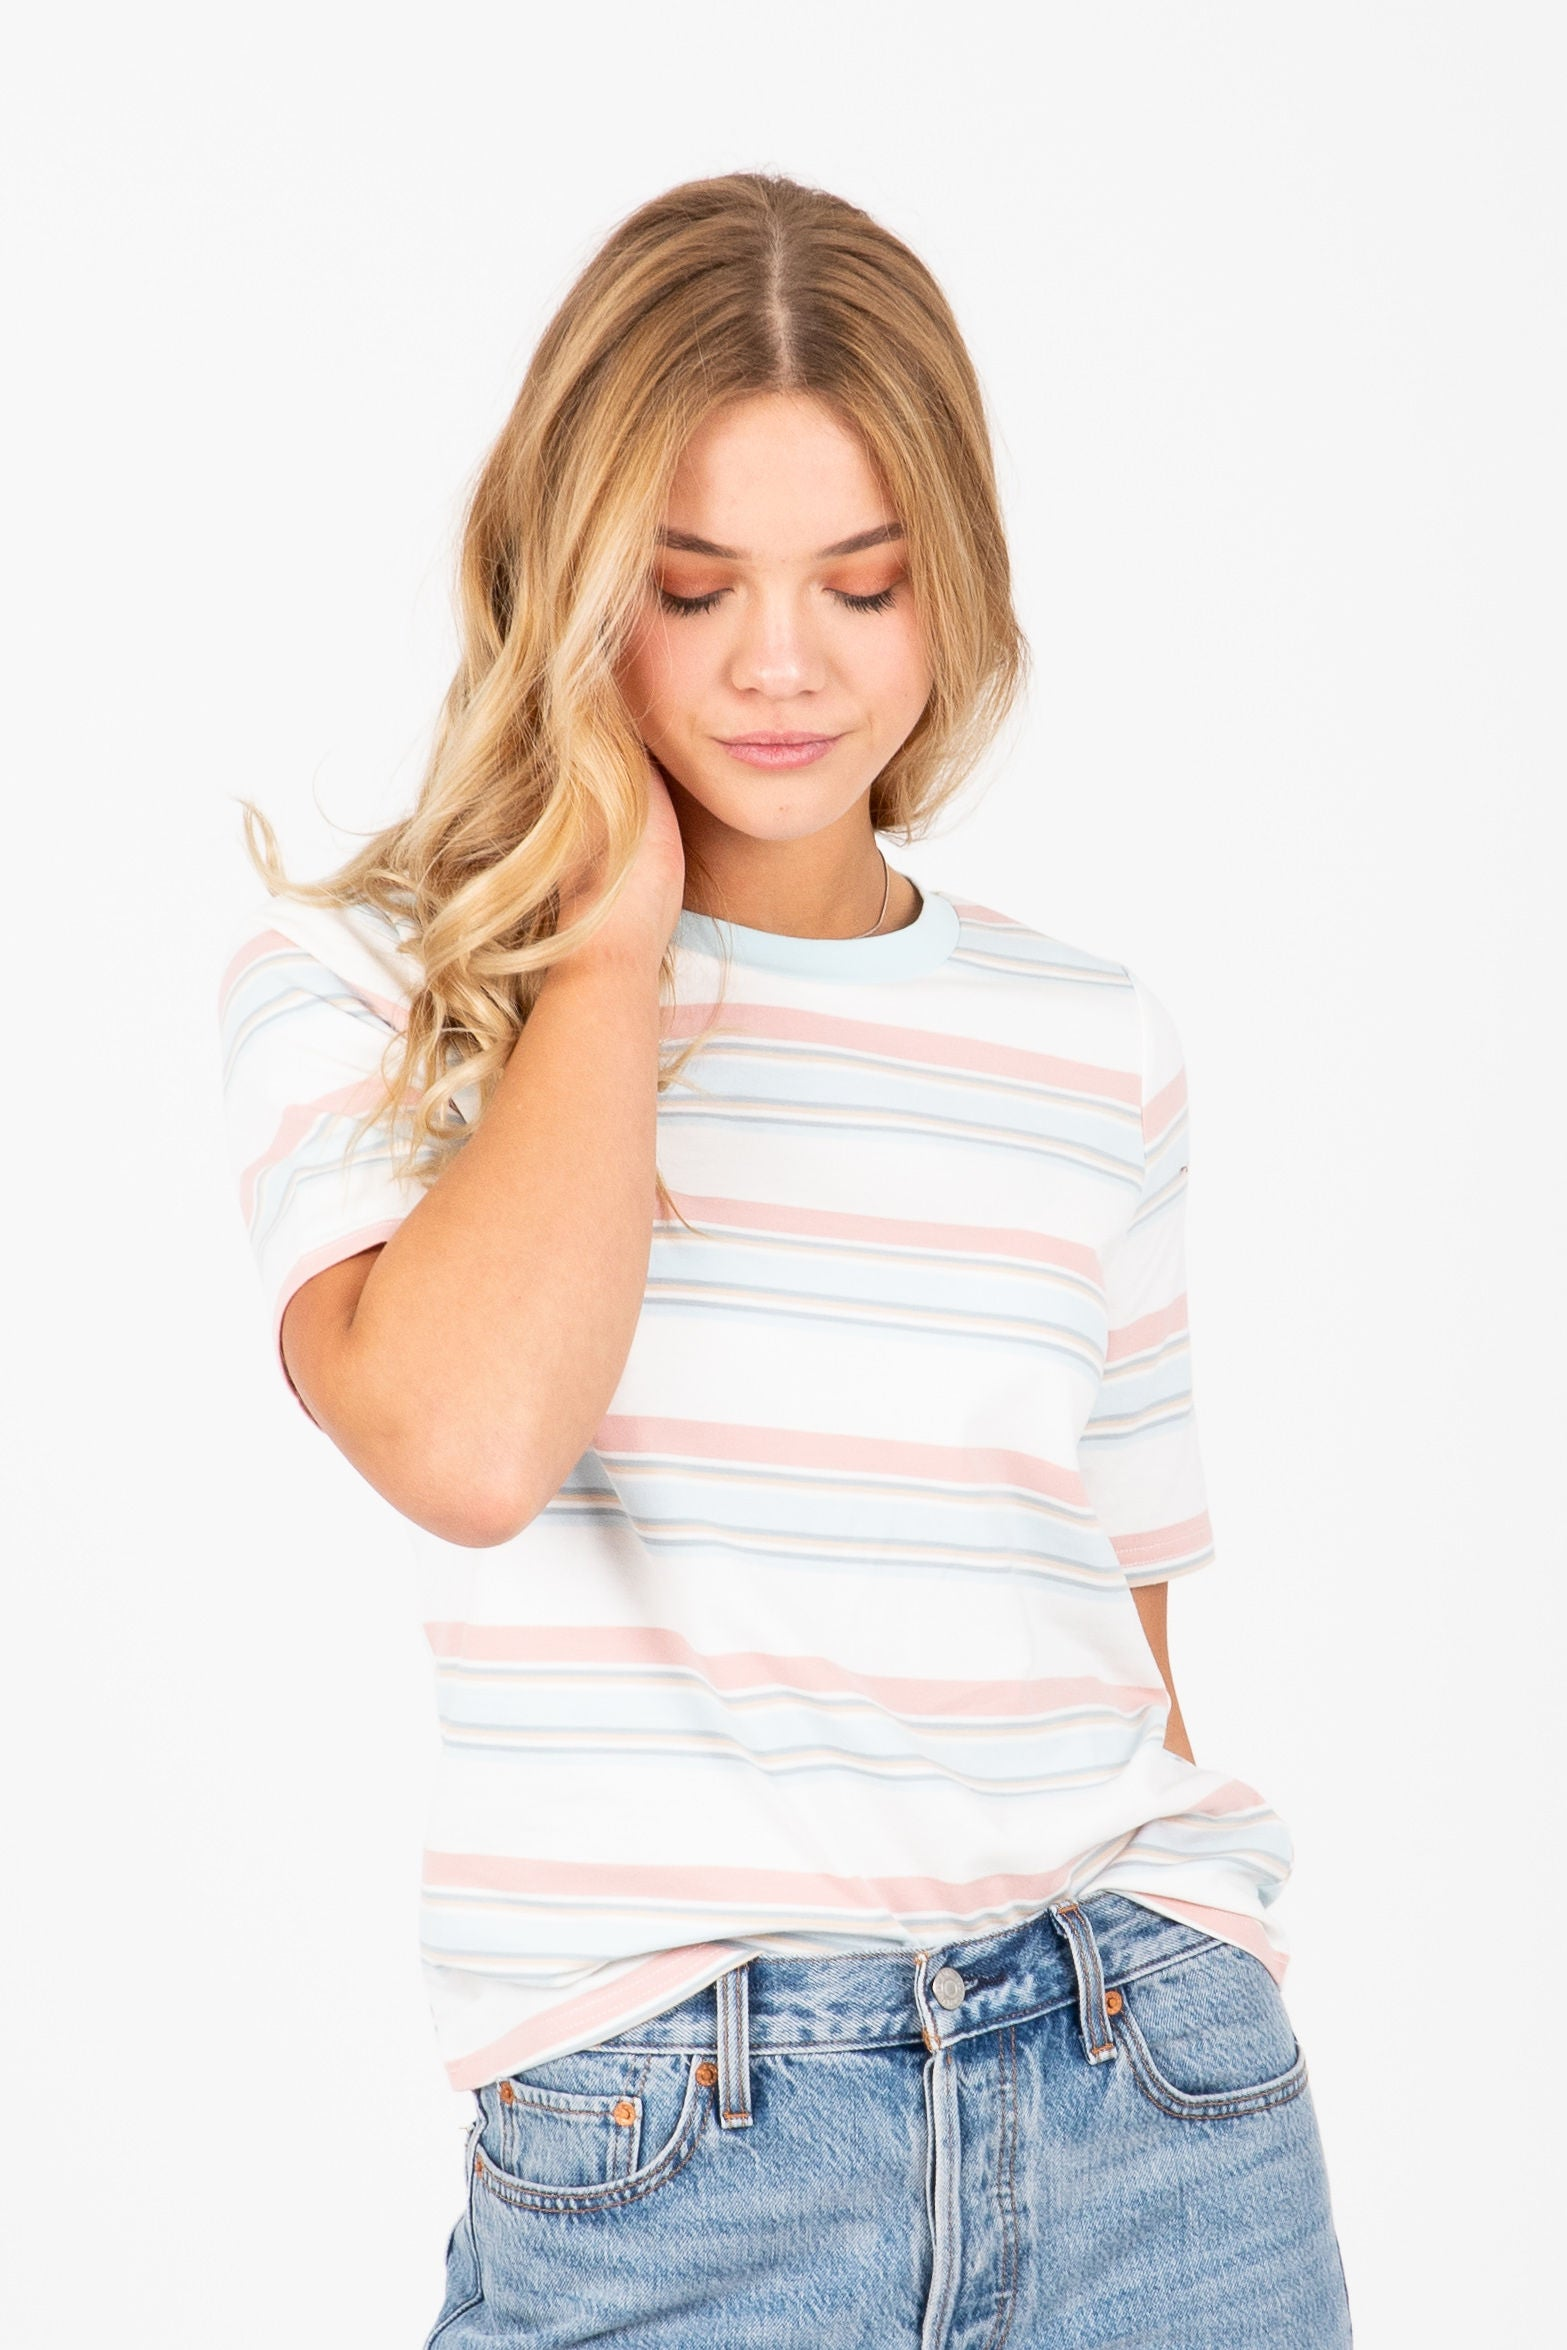 The Moxee Striped Tee in Blush